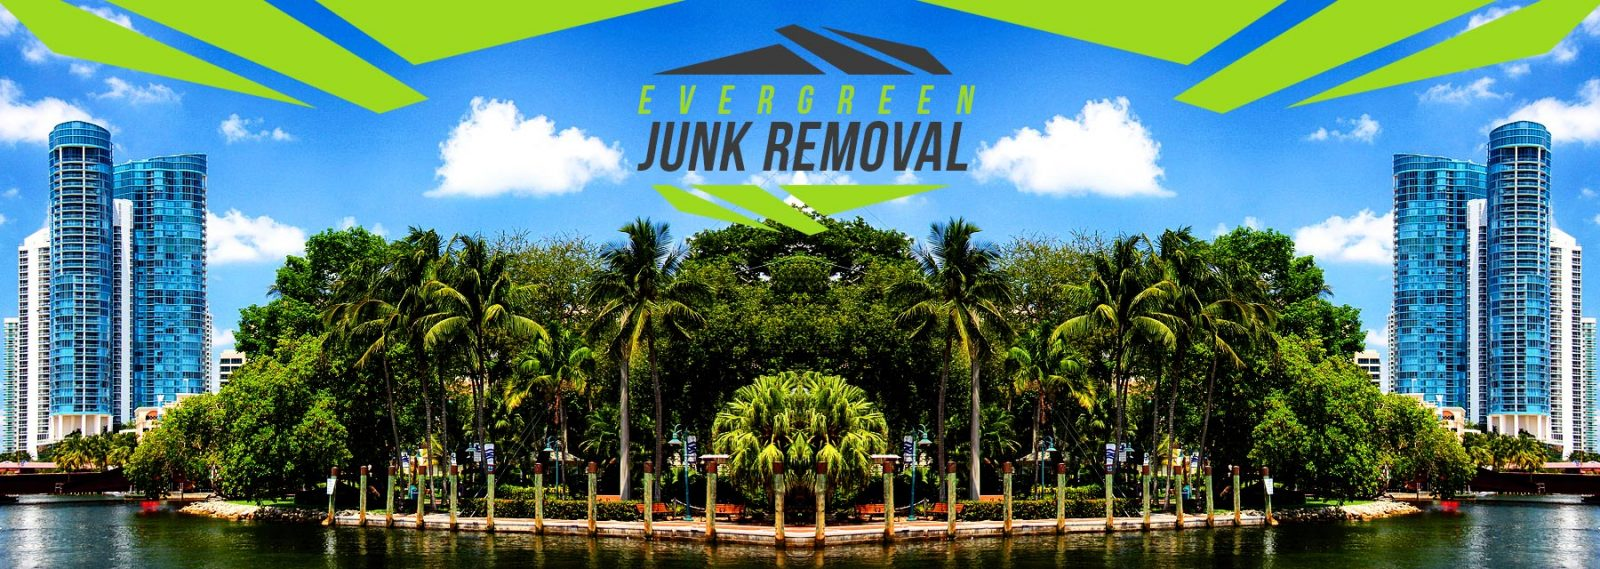 West Palm Beach Junk Removal